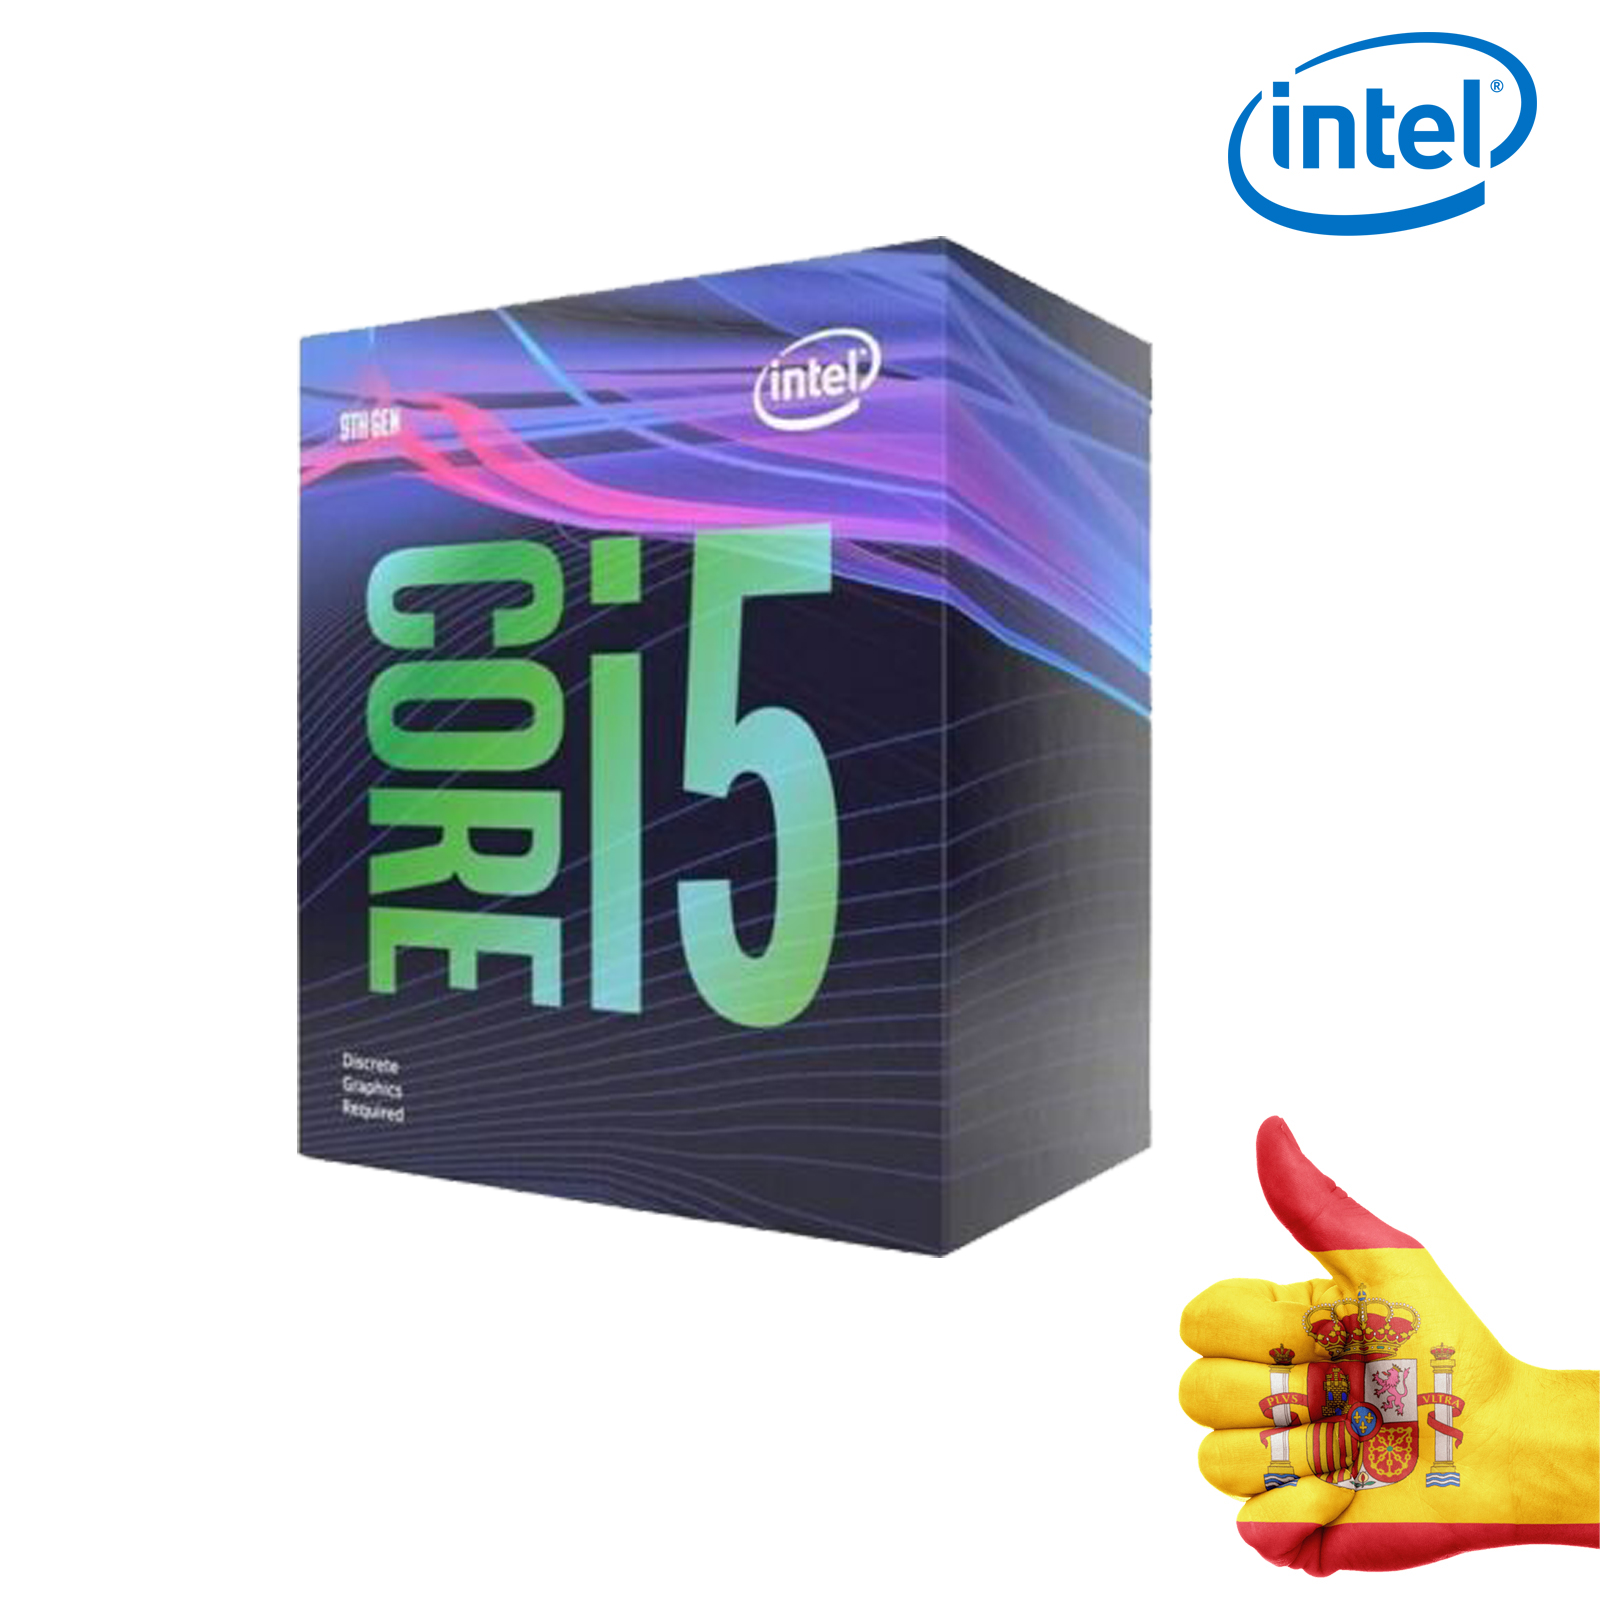 CPU INTEL CORE I5-9400 2.90GHZ 9M LGA1151 BX80684I59400 999J24